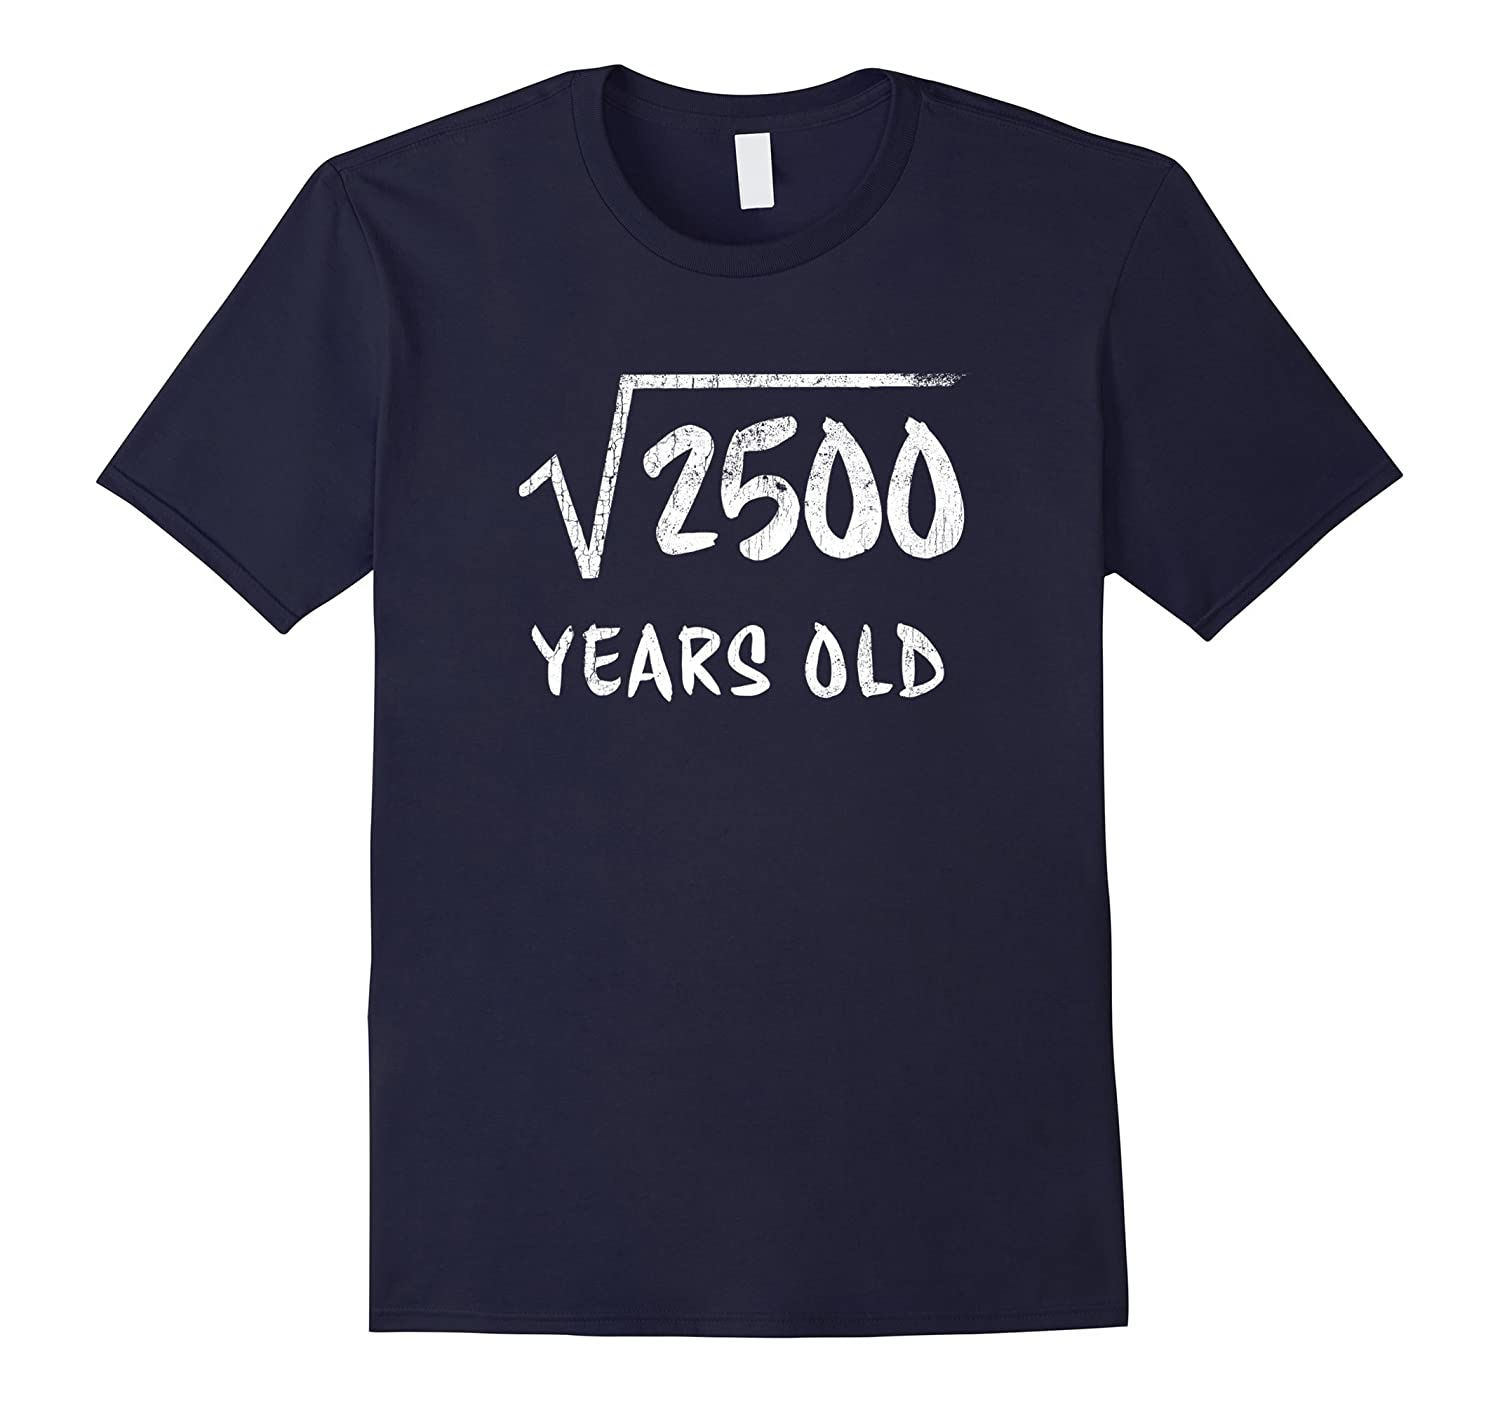 50th Birthday T-Shirt Square Root of 2500 50 years old Humor-TH